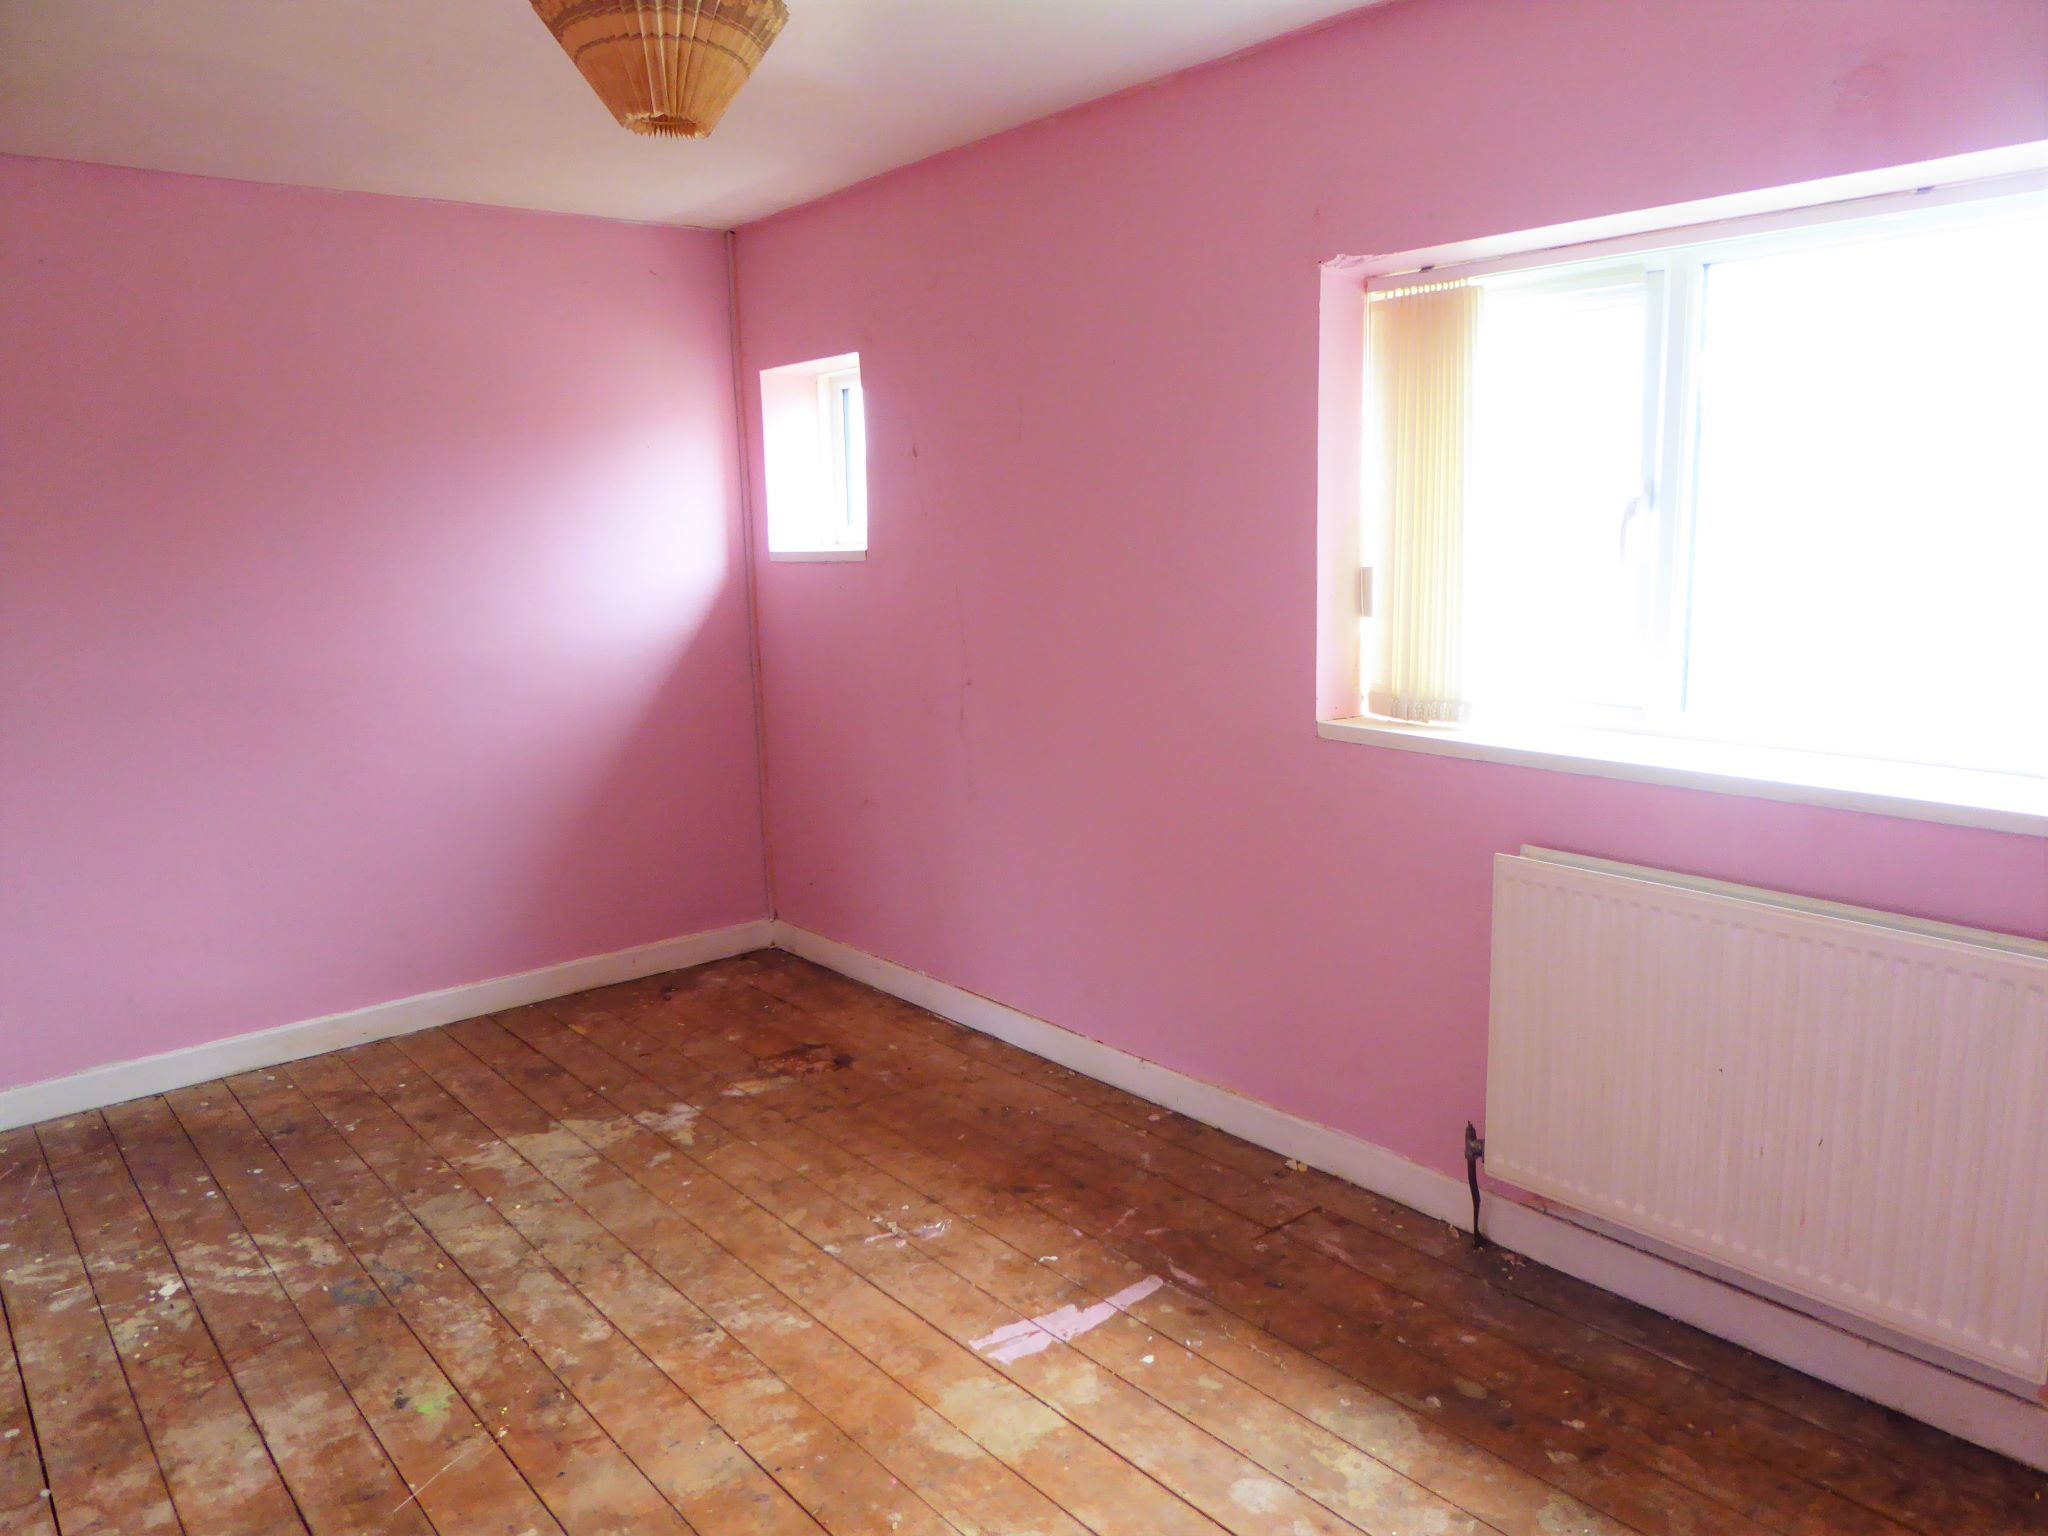 3 bedroom mid terraced house SSTC in Abergele - Photograph 8